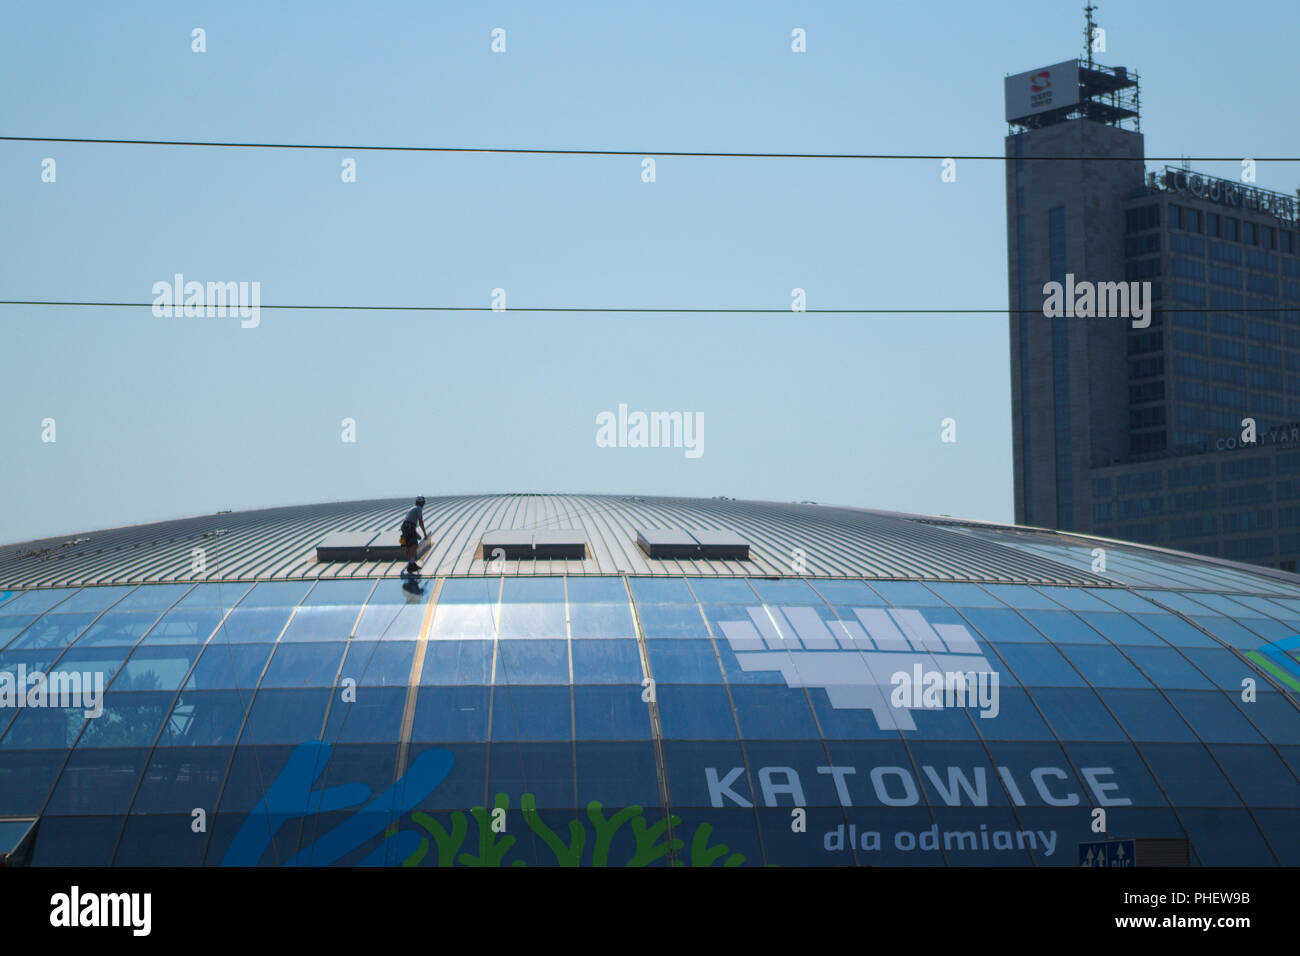 Tram station roof under maintenance - Katowice, Poland. - Stock Image